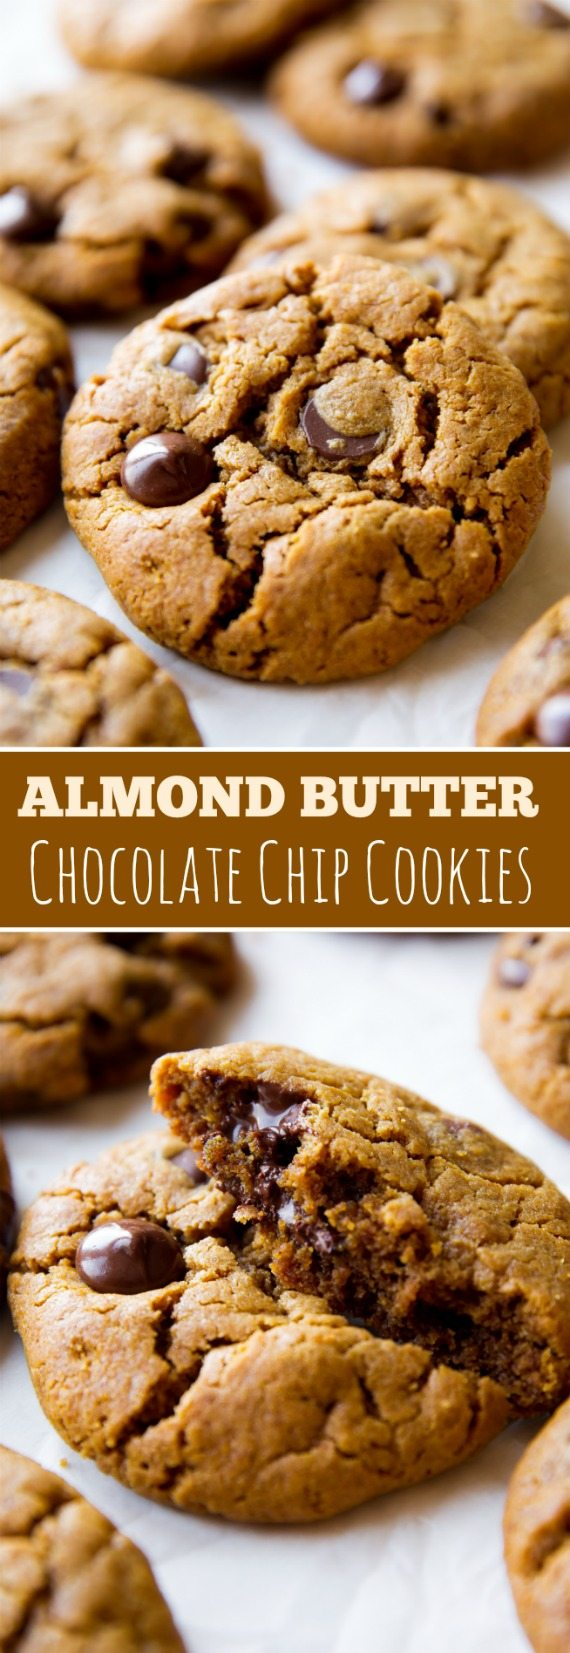 Almond Butter Chocolate Chip Cookies - Sallys Baking Addiction